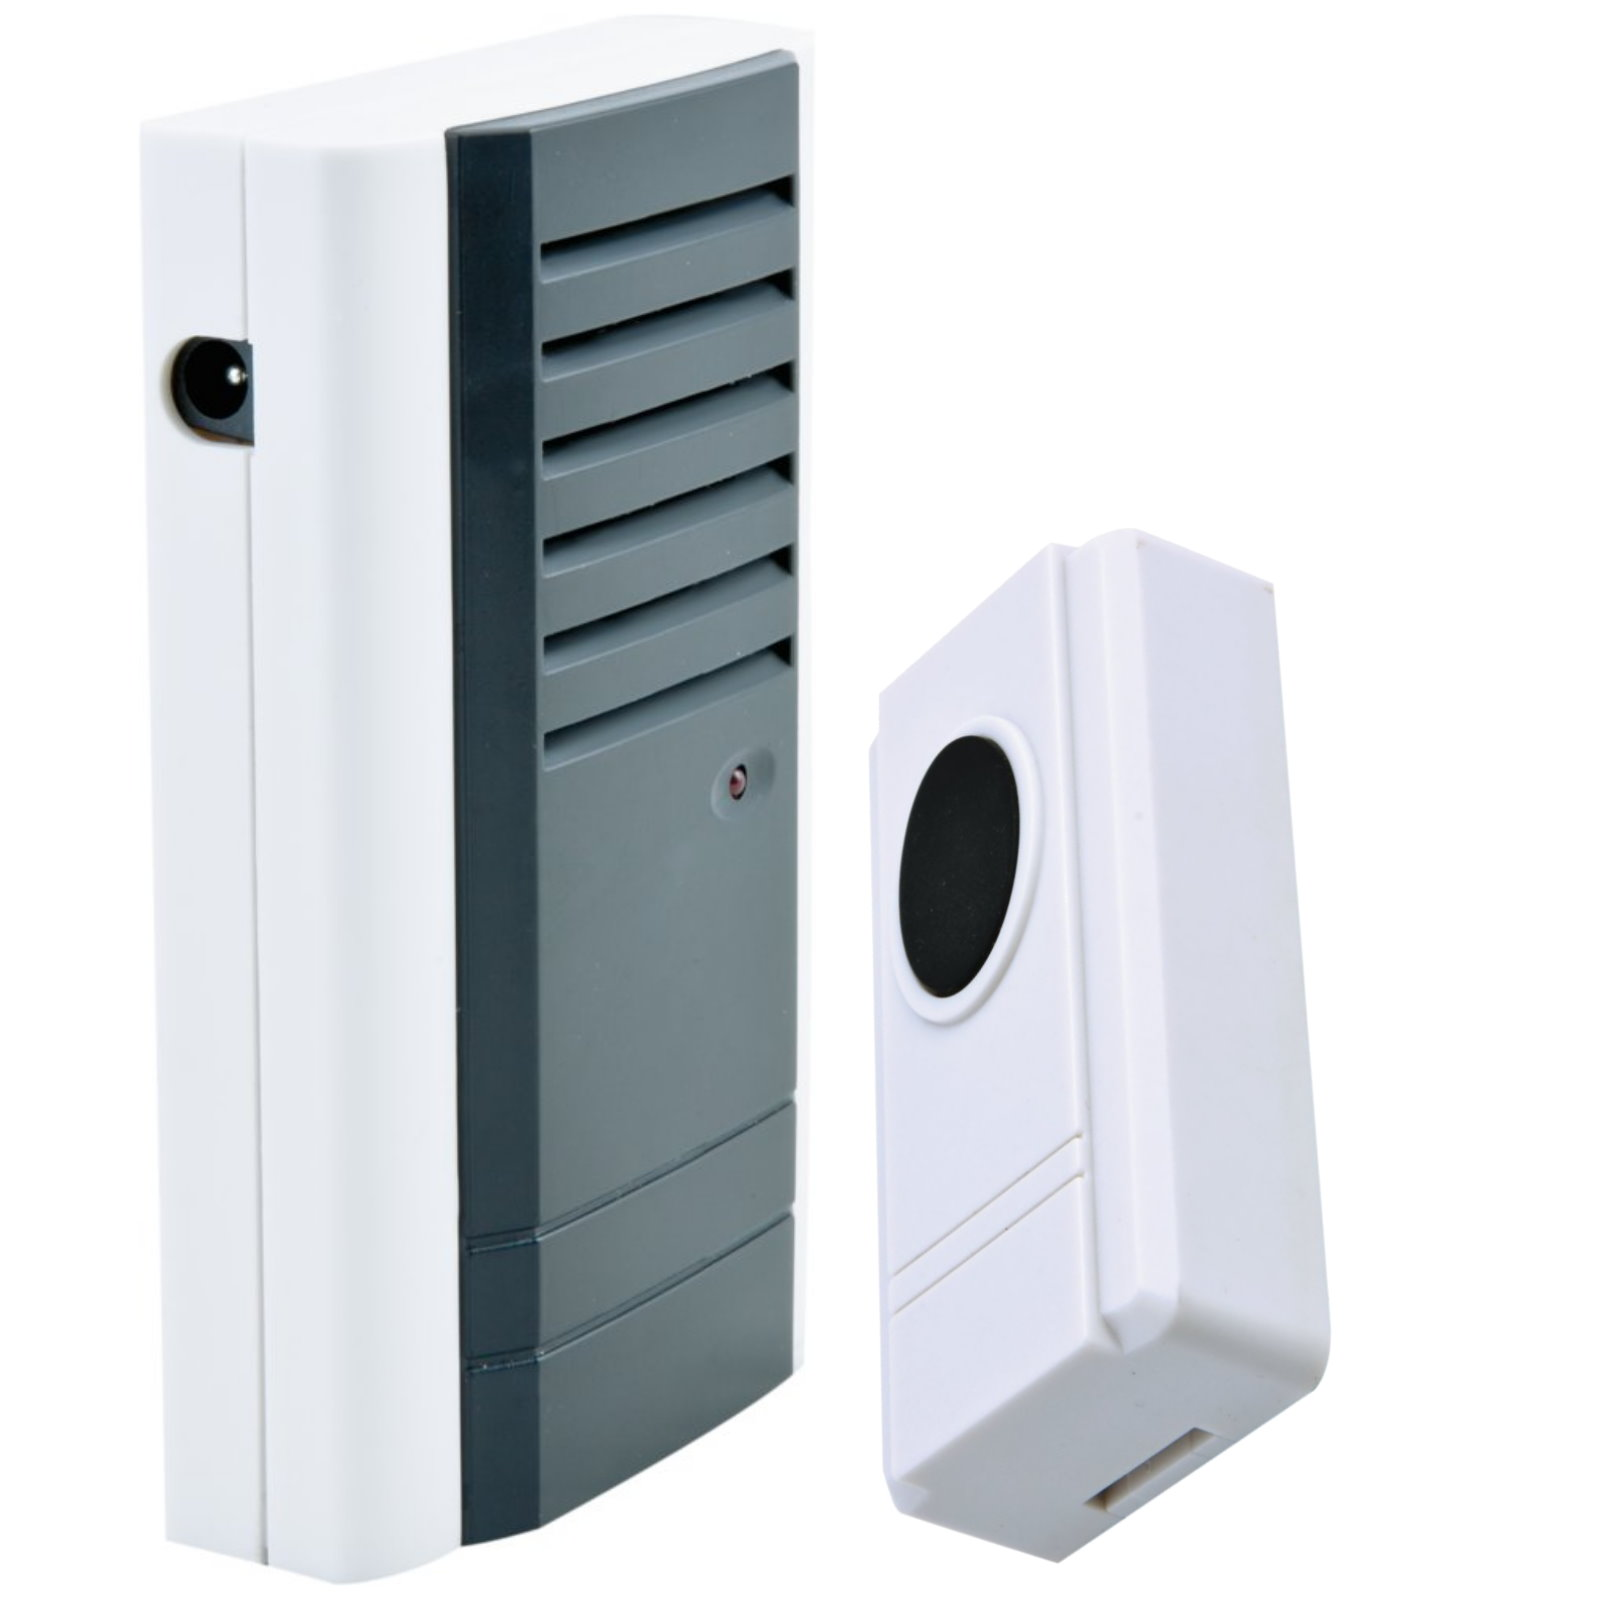 gev heitronic wireless t rgong t r gong klingel funkklingel doorbell batterie ebay. Black Bedroom Furniture Sets. Home Design Ideas